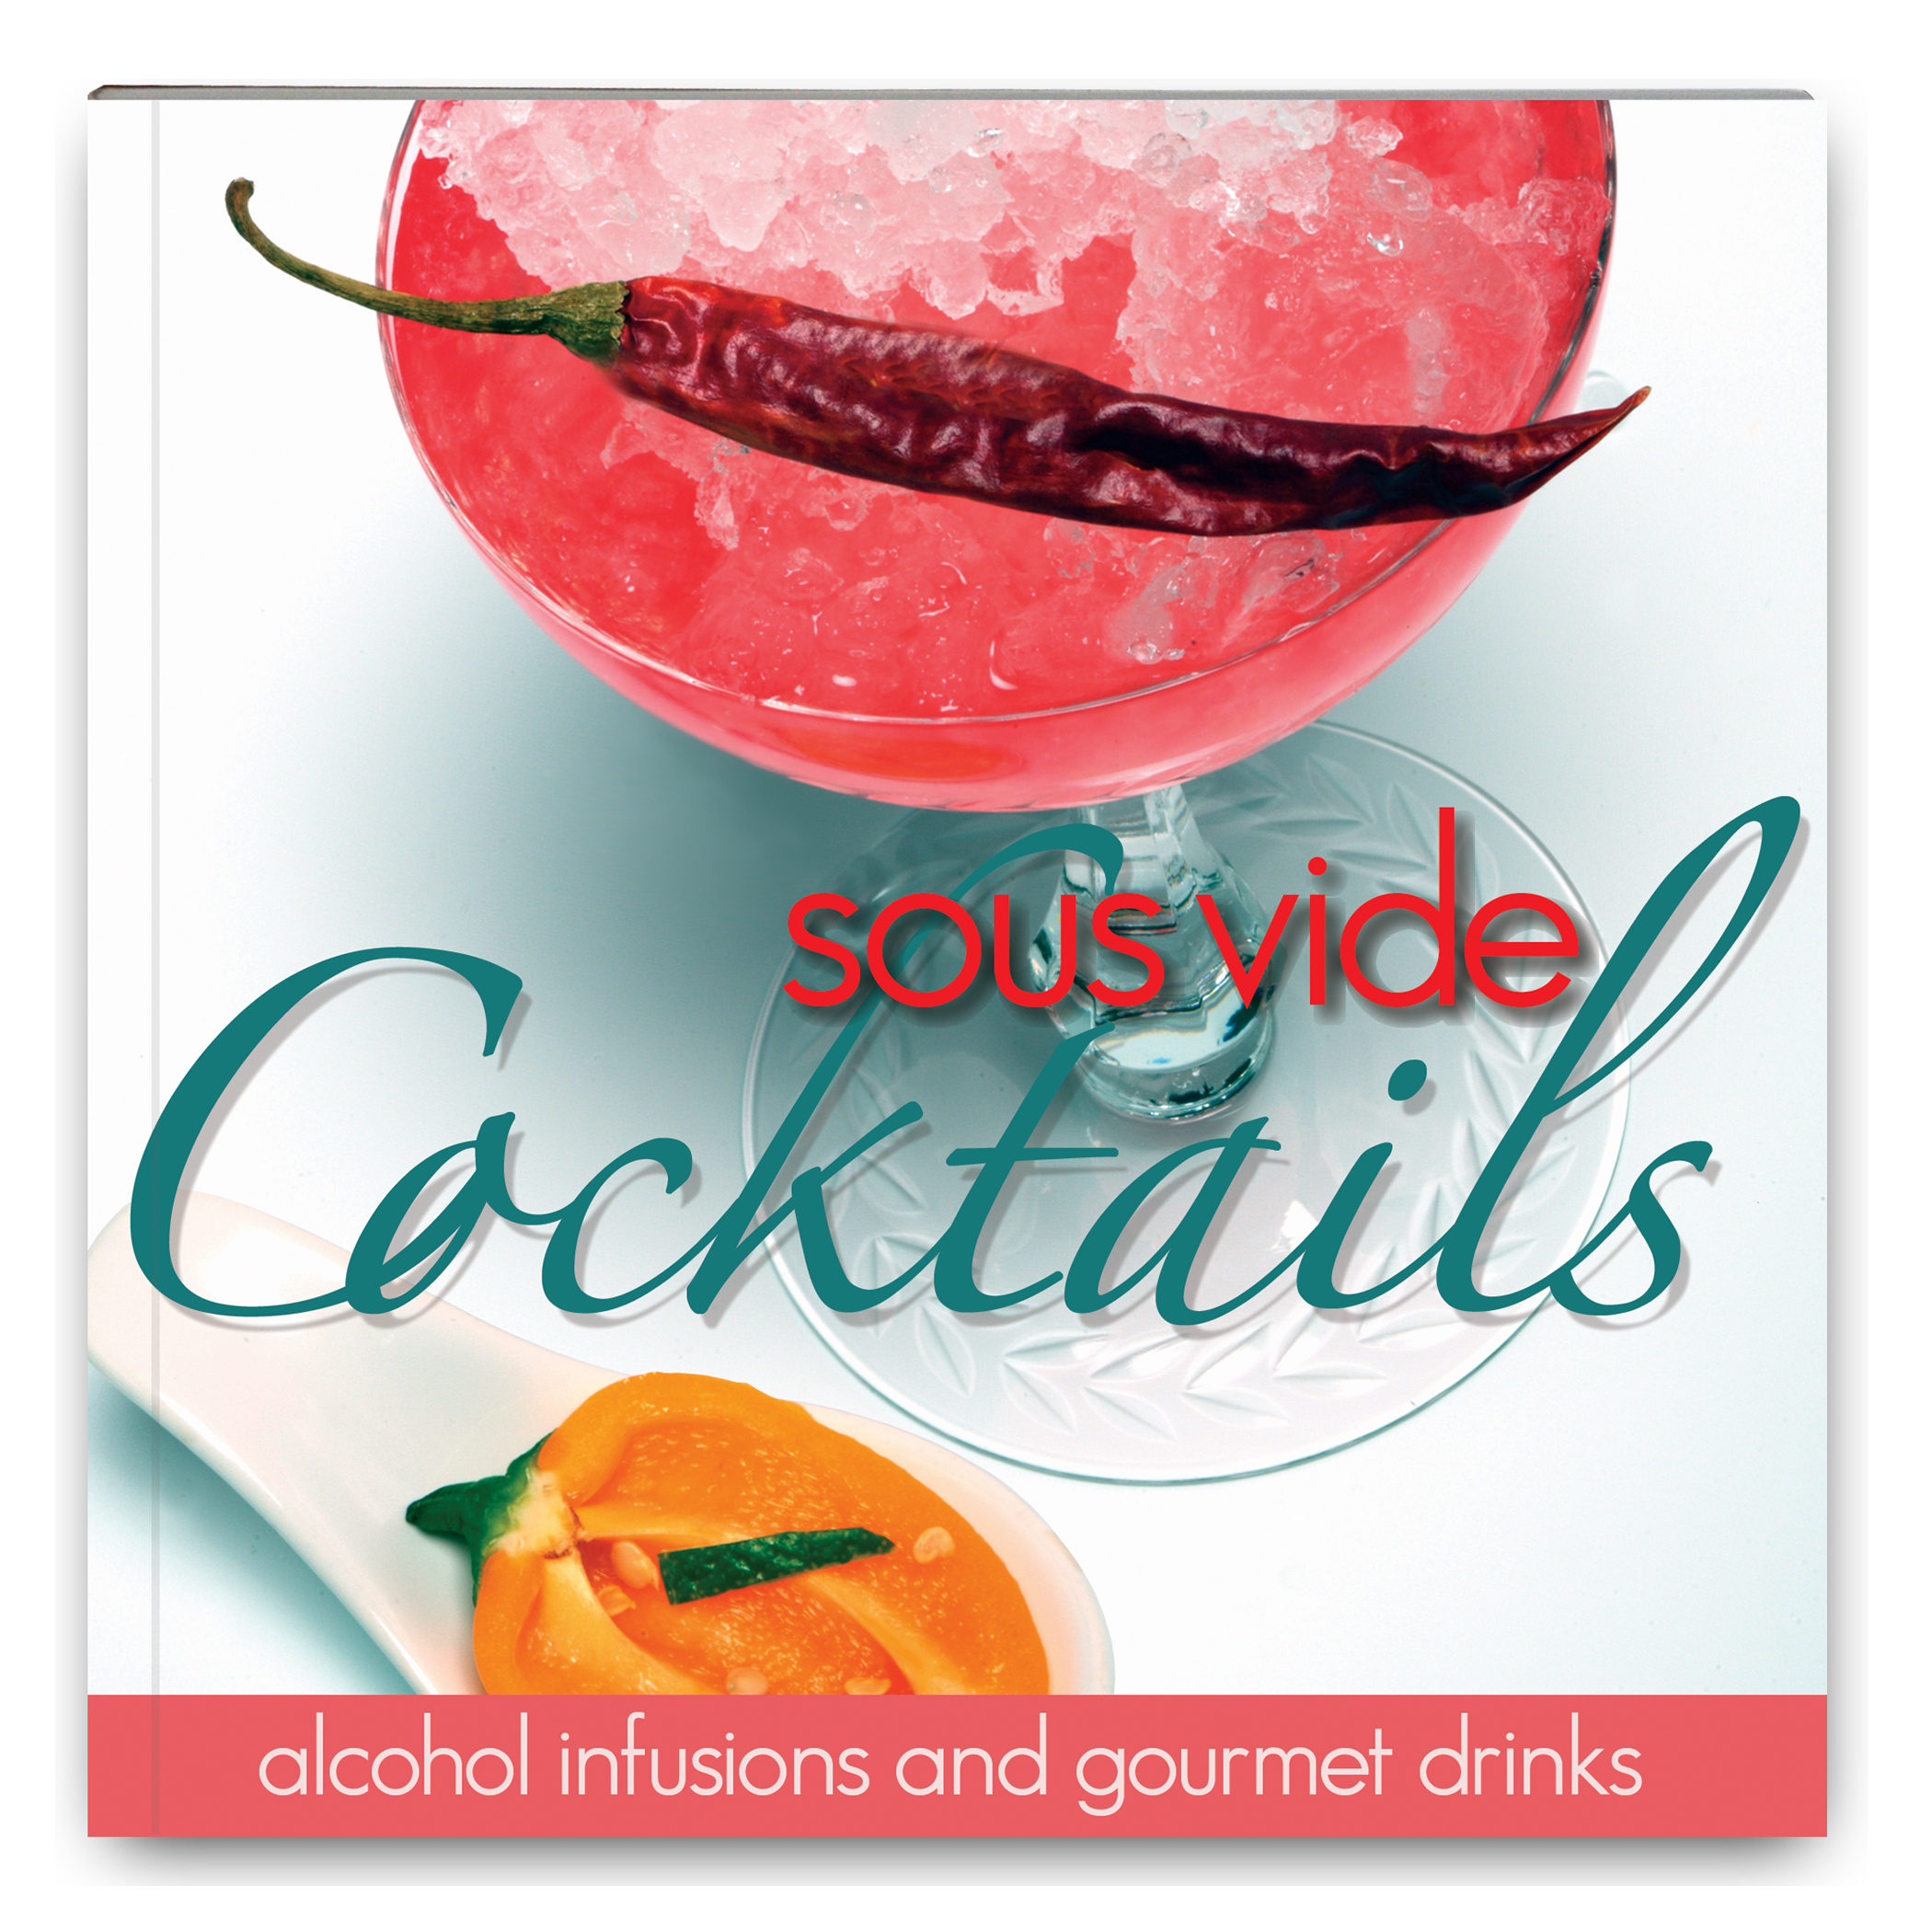 SousVide Cocktails Cookbook